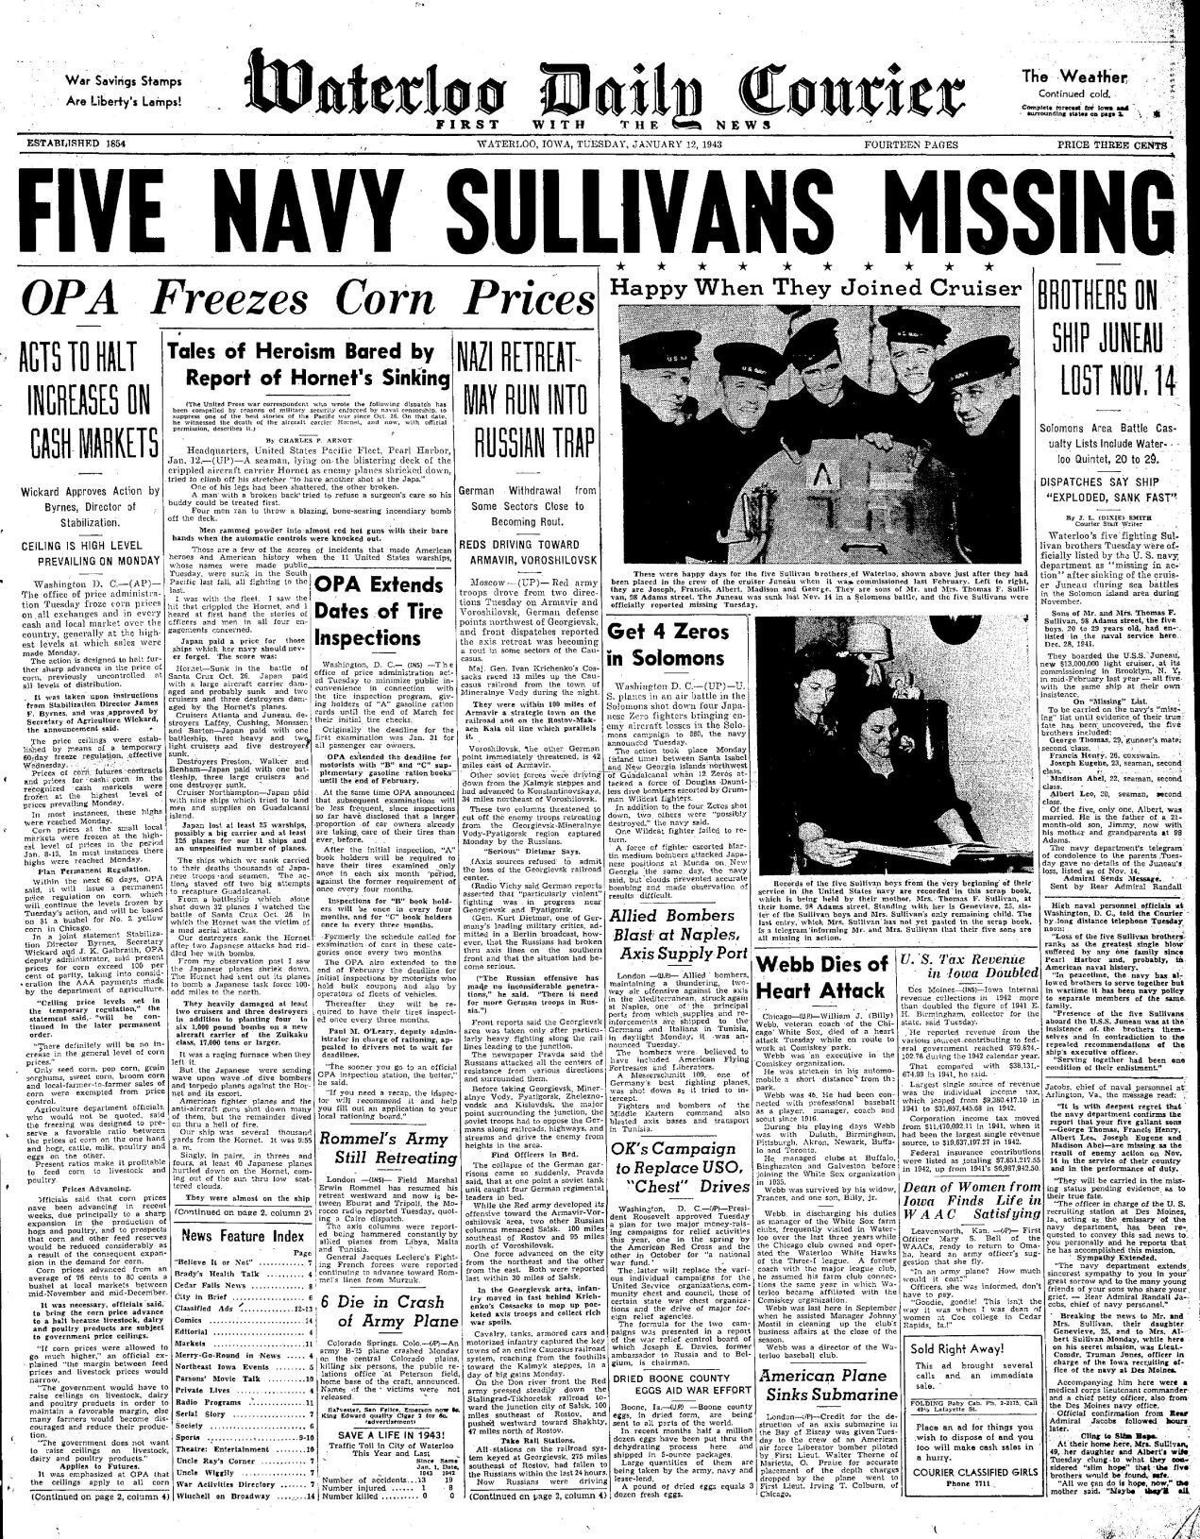 Courier Jan. 12, 1943